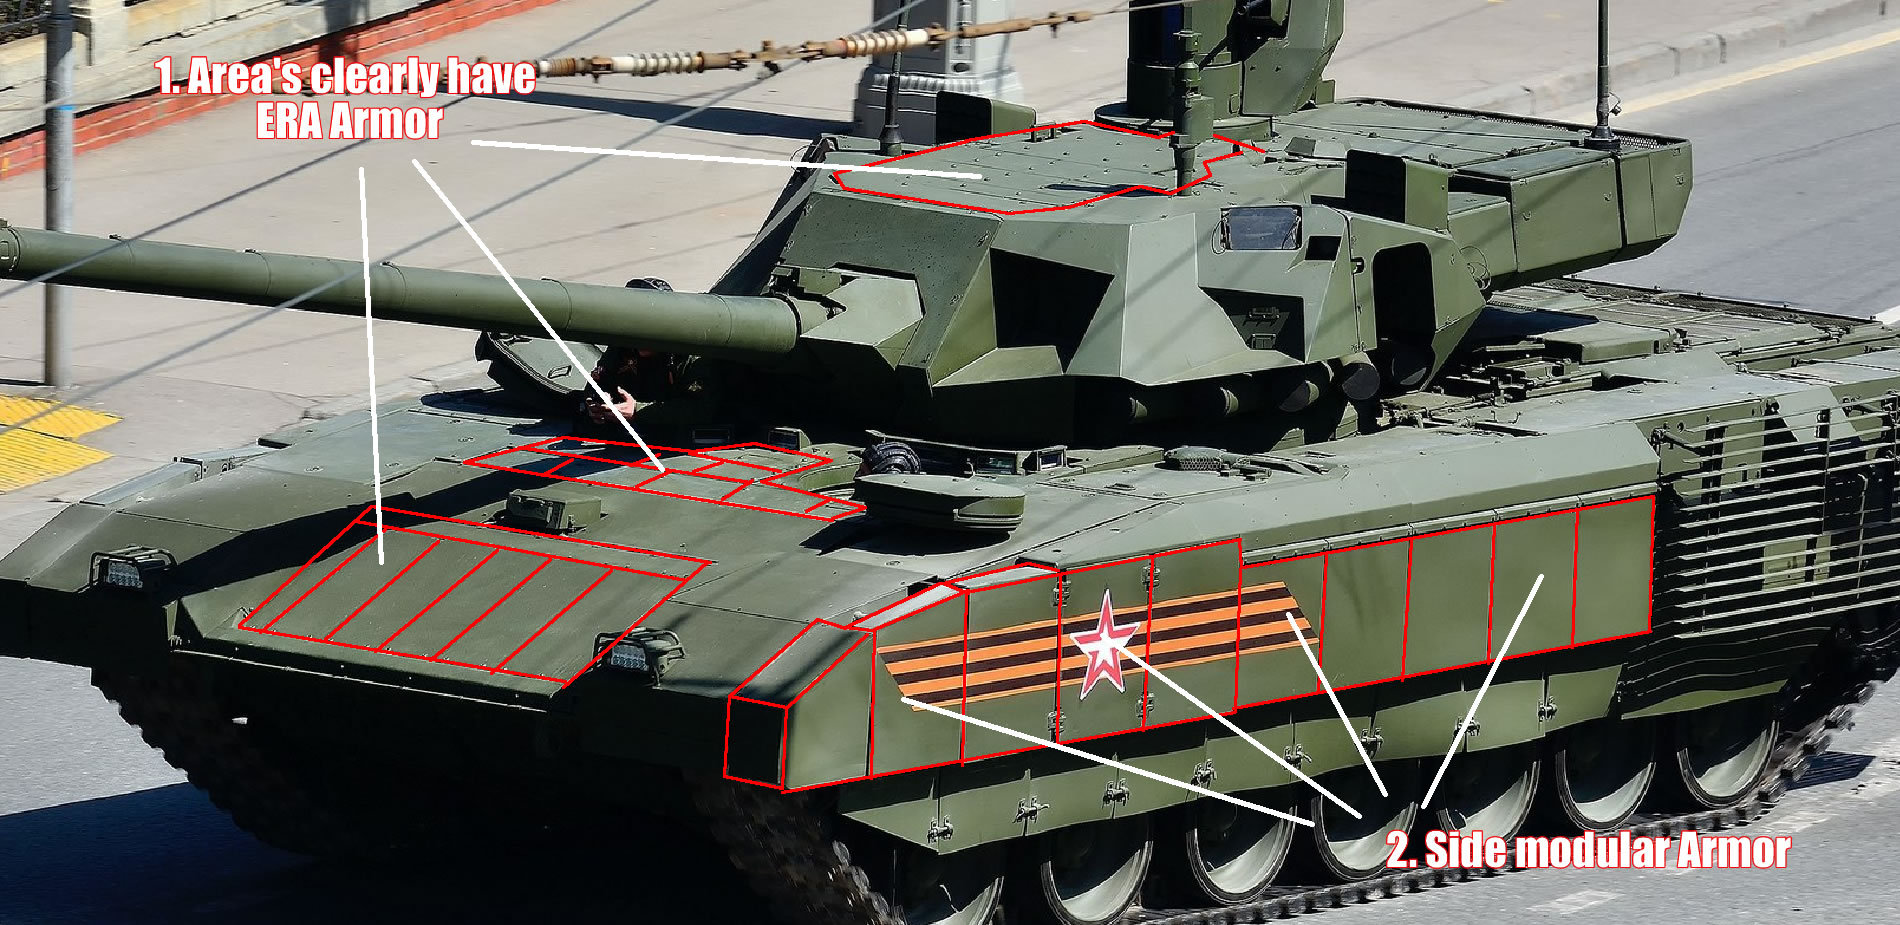 http://tanknutdave.com/wp-content/uploads/2015/04/T-14-Armata-Tank-armor.jpg